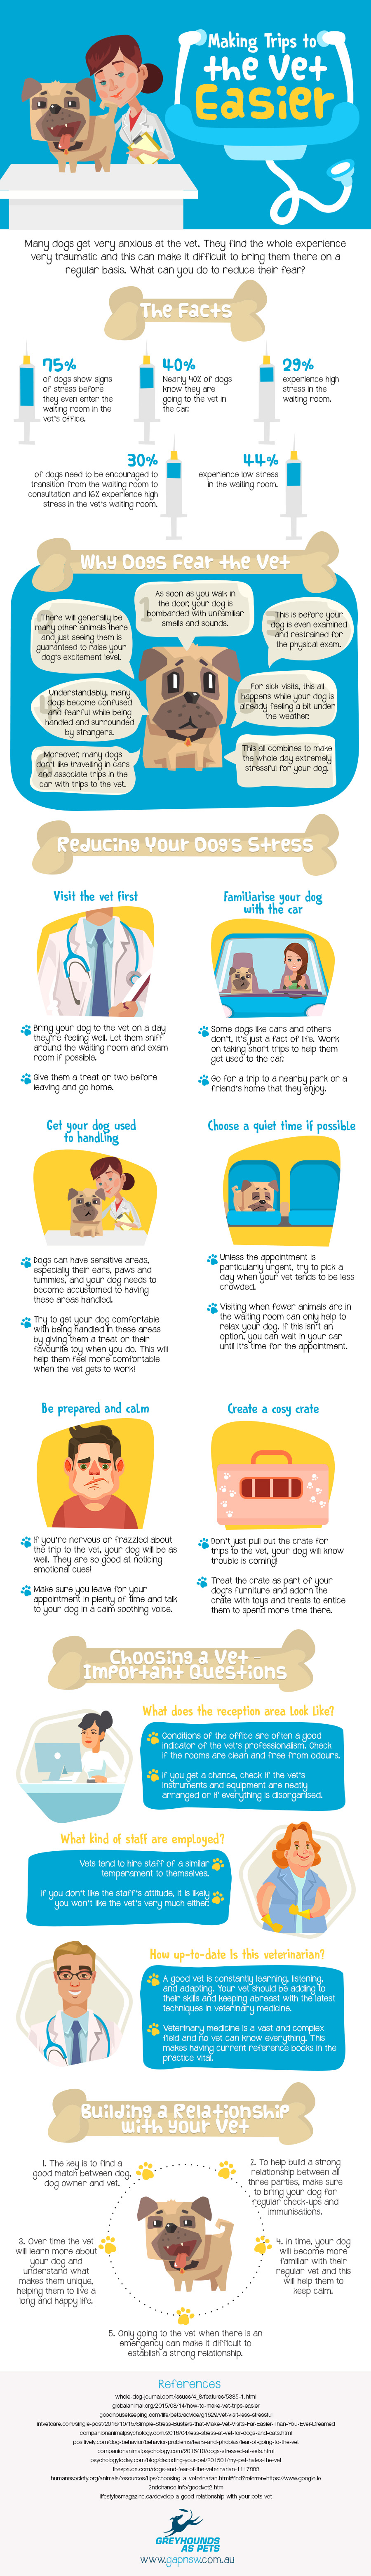 Making-Trips-to-the-Vets-Easier-Infographic | How to Make Trips to The Vet Easier